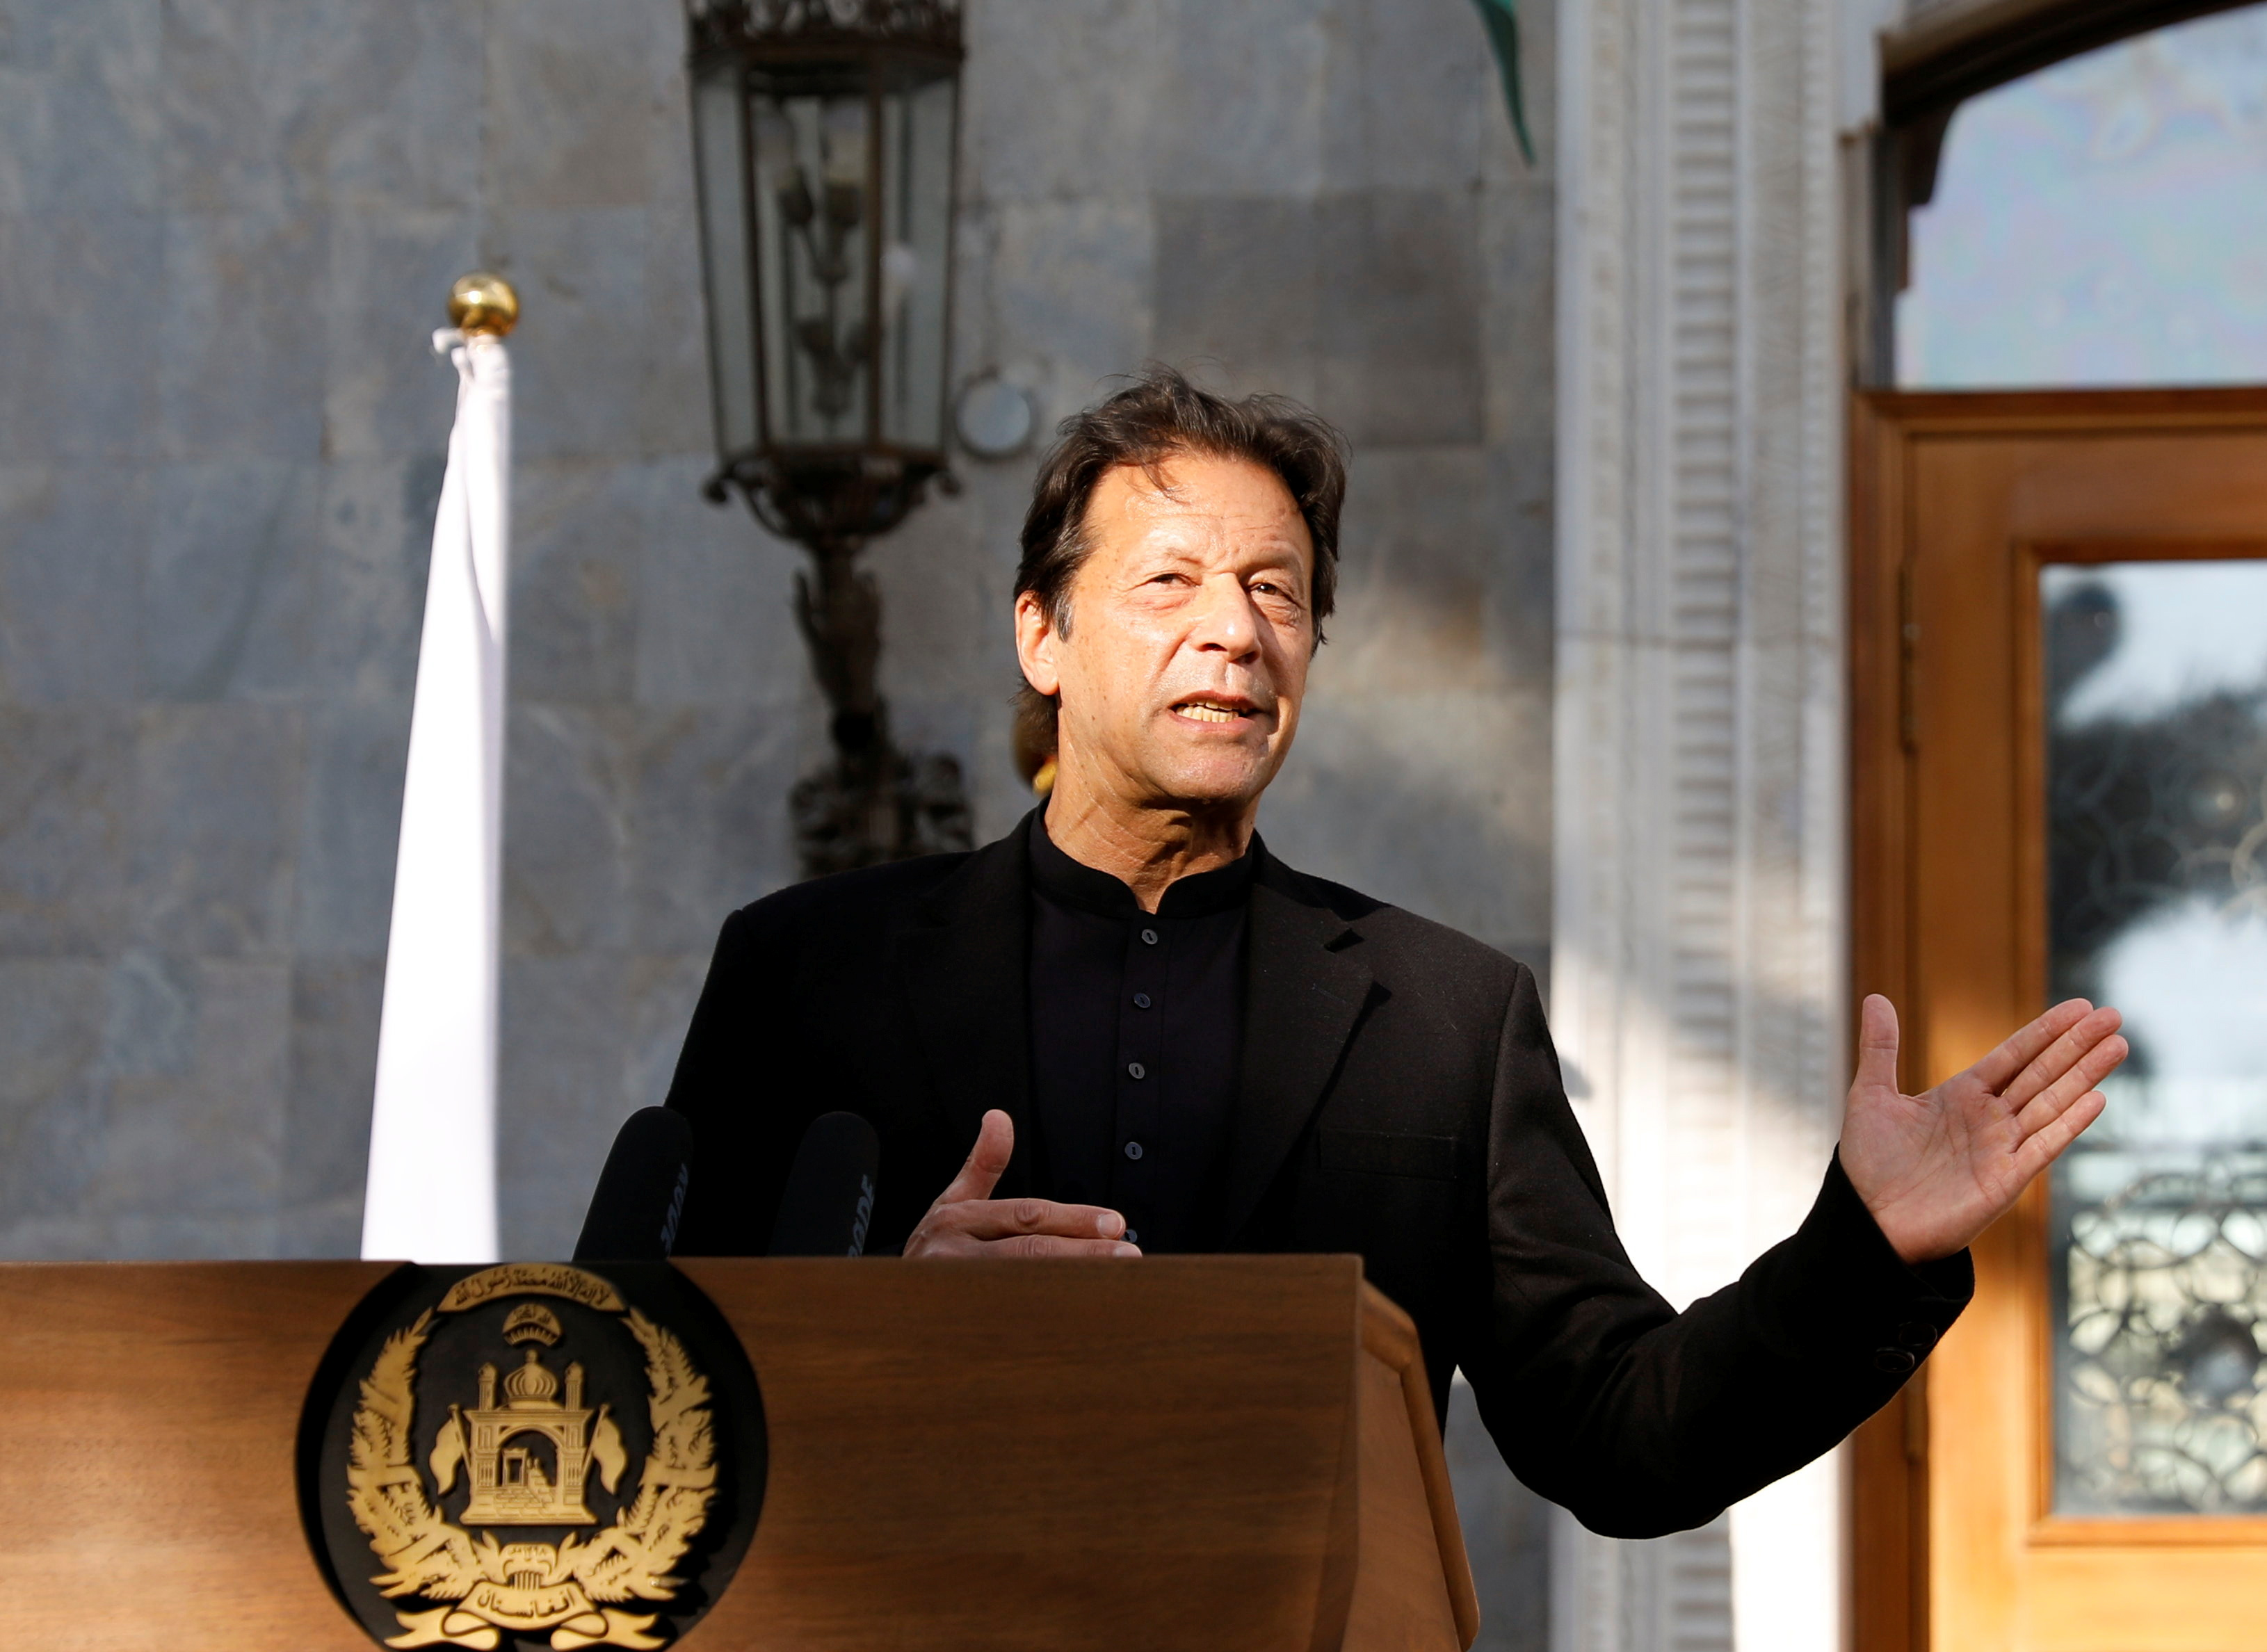 Pakistan's Prime Minister Imran Khan speaks during a joint news conference with Afghan President Ashraf Ghani (not pictured) at the presidential palace in Kabul, Afghanistan November 19, 2020. REUTERS/Mohammad Ismail